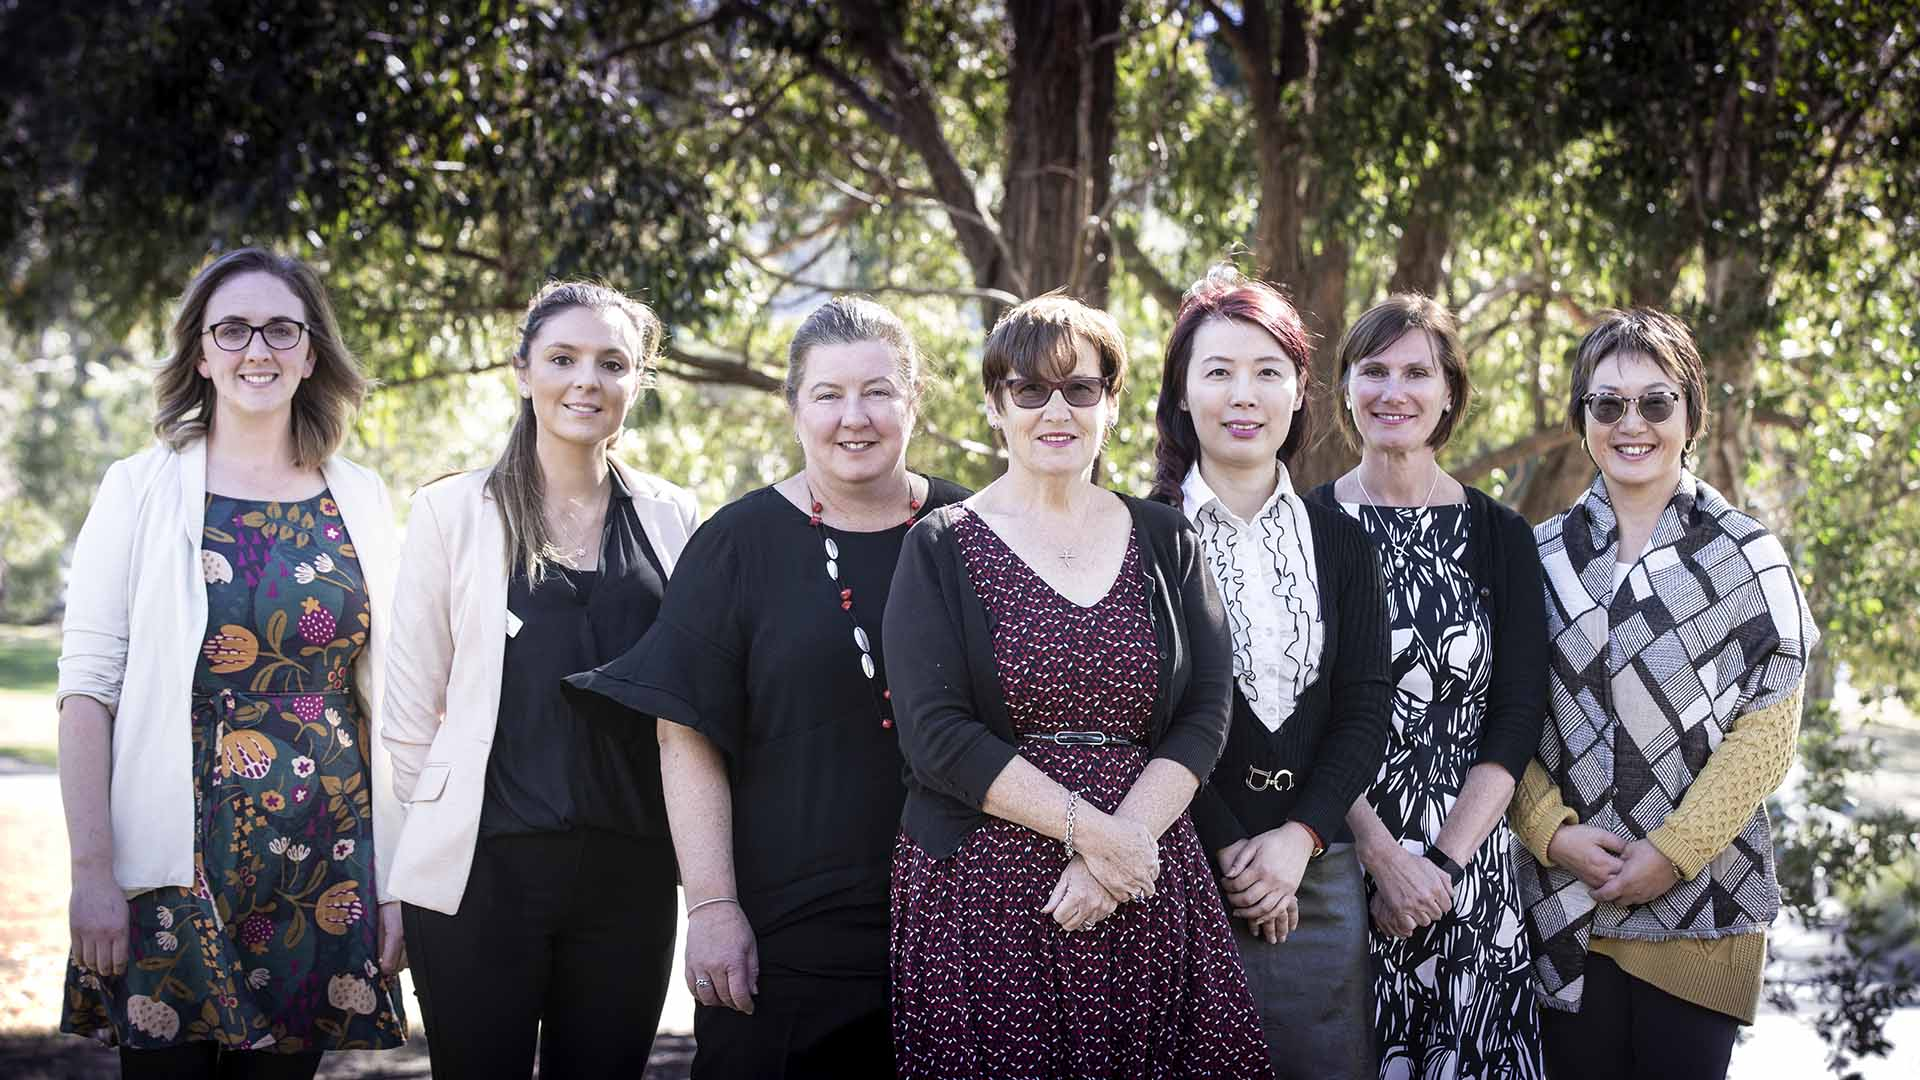 Funding for delirium research in the Illawarra